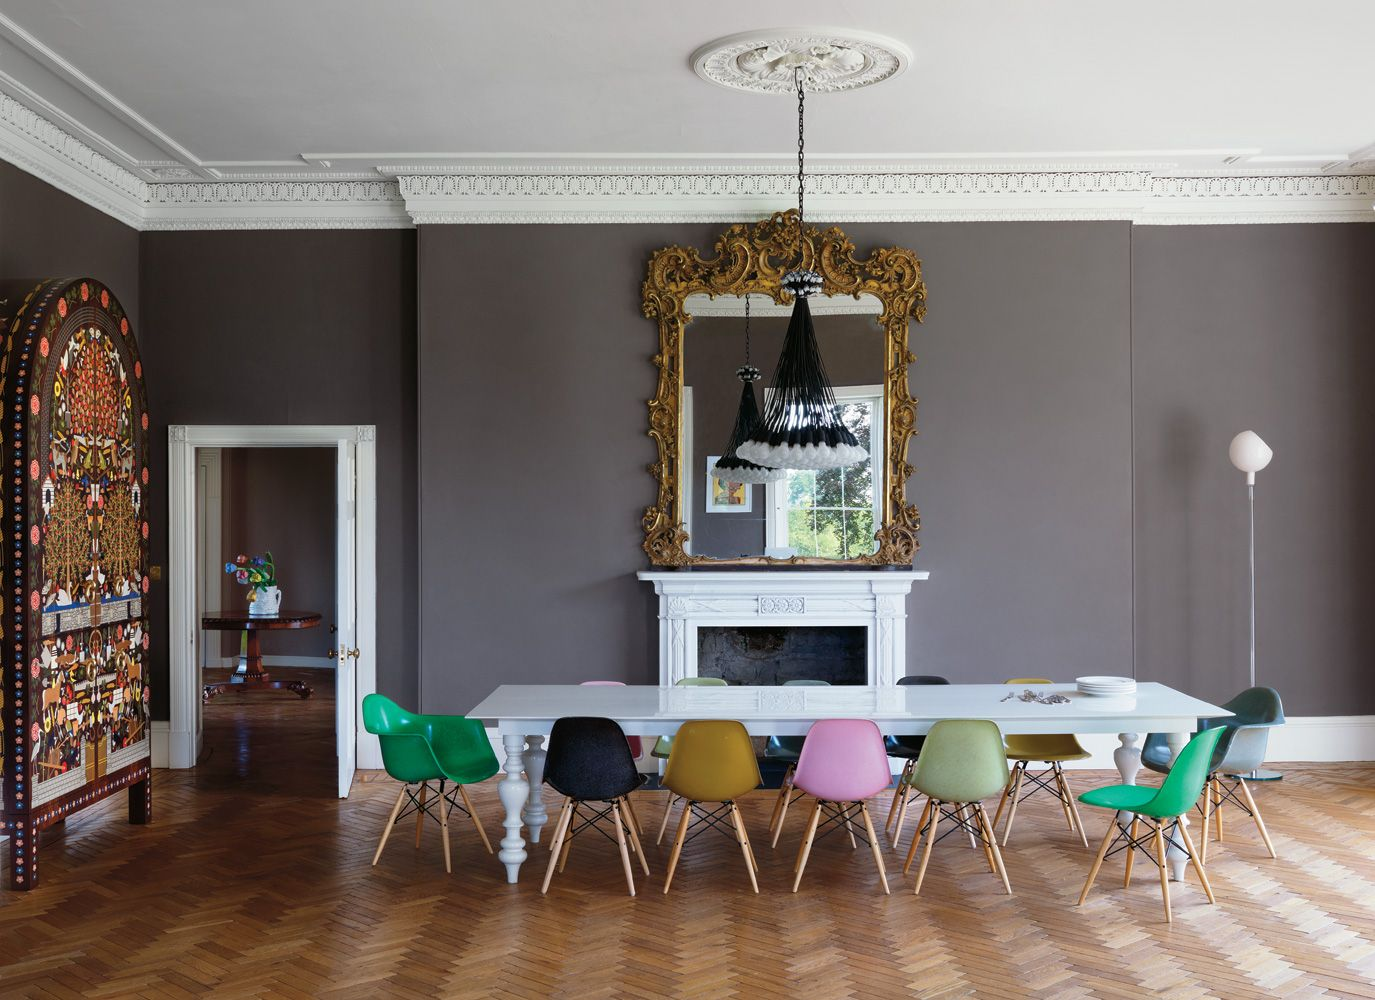 Mademoiselle georgian transformation dinder house sommerset also best our home styling images on pinterest ideas my rh